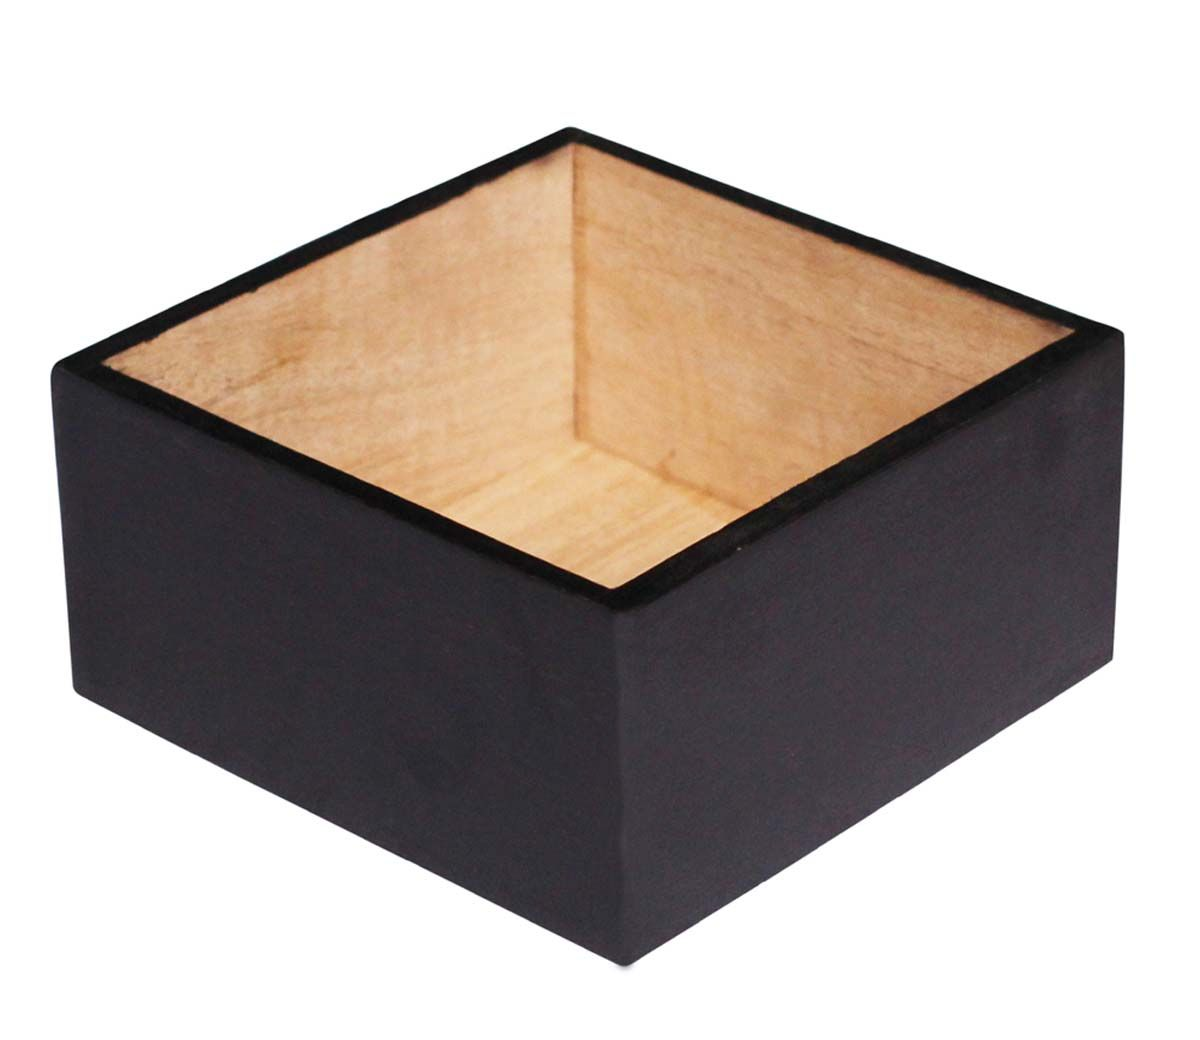 Bulk Wholesale 6x3 Square Wooden Planter Box For Artificial Plants Hand Painted Black De Plant Pot Decoration Planter Pots Outdoor Artificial Plants Decor